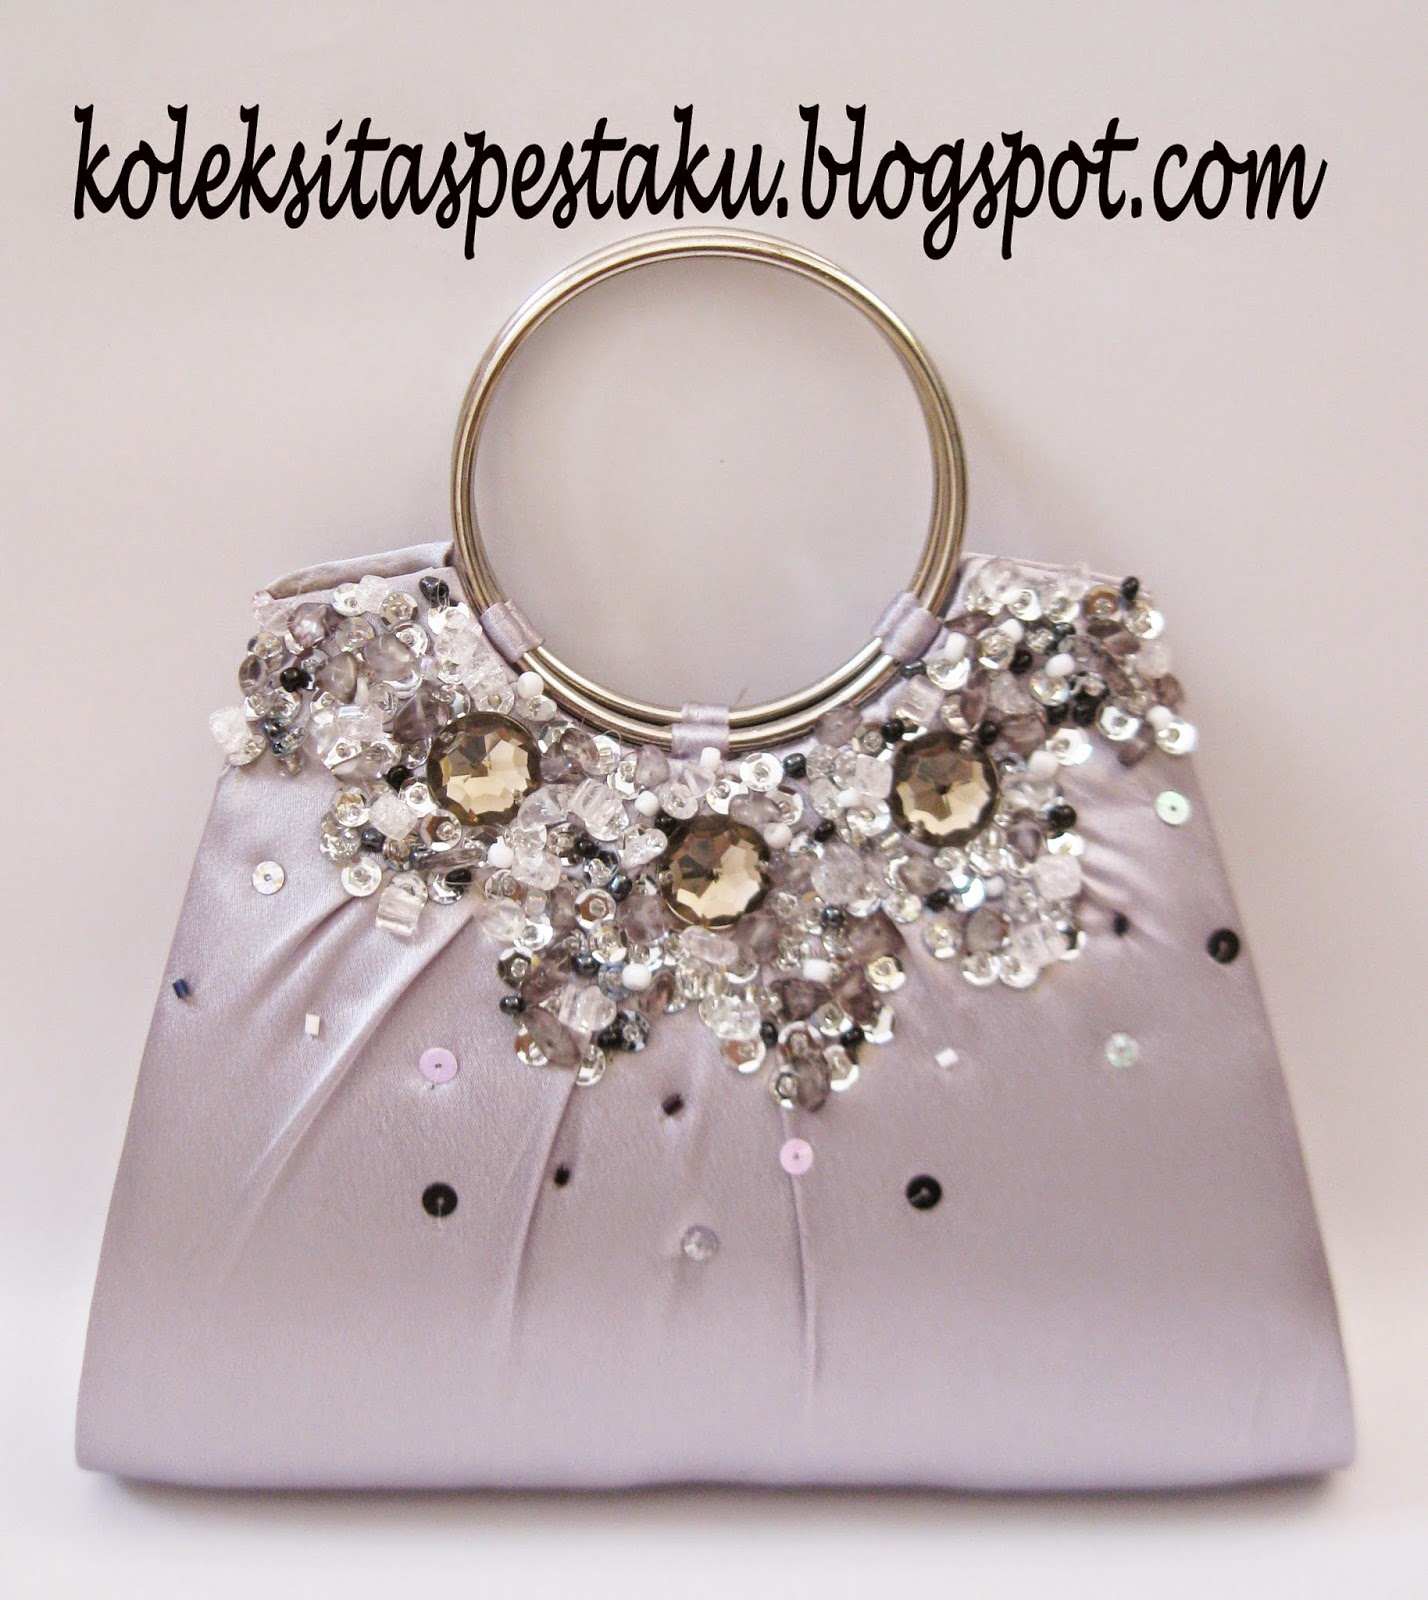 Tas Pesta - Clutch Bag  taspestaku  Model Terbaru Clutch Bag Mewah ... acd5342c8b